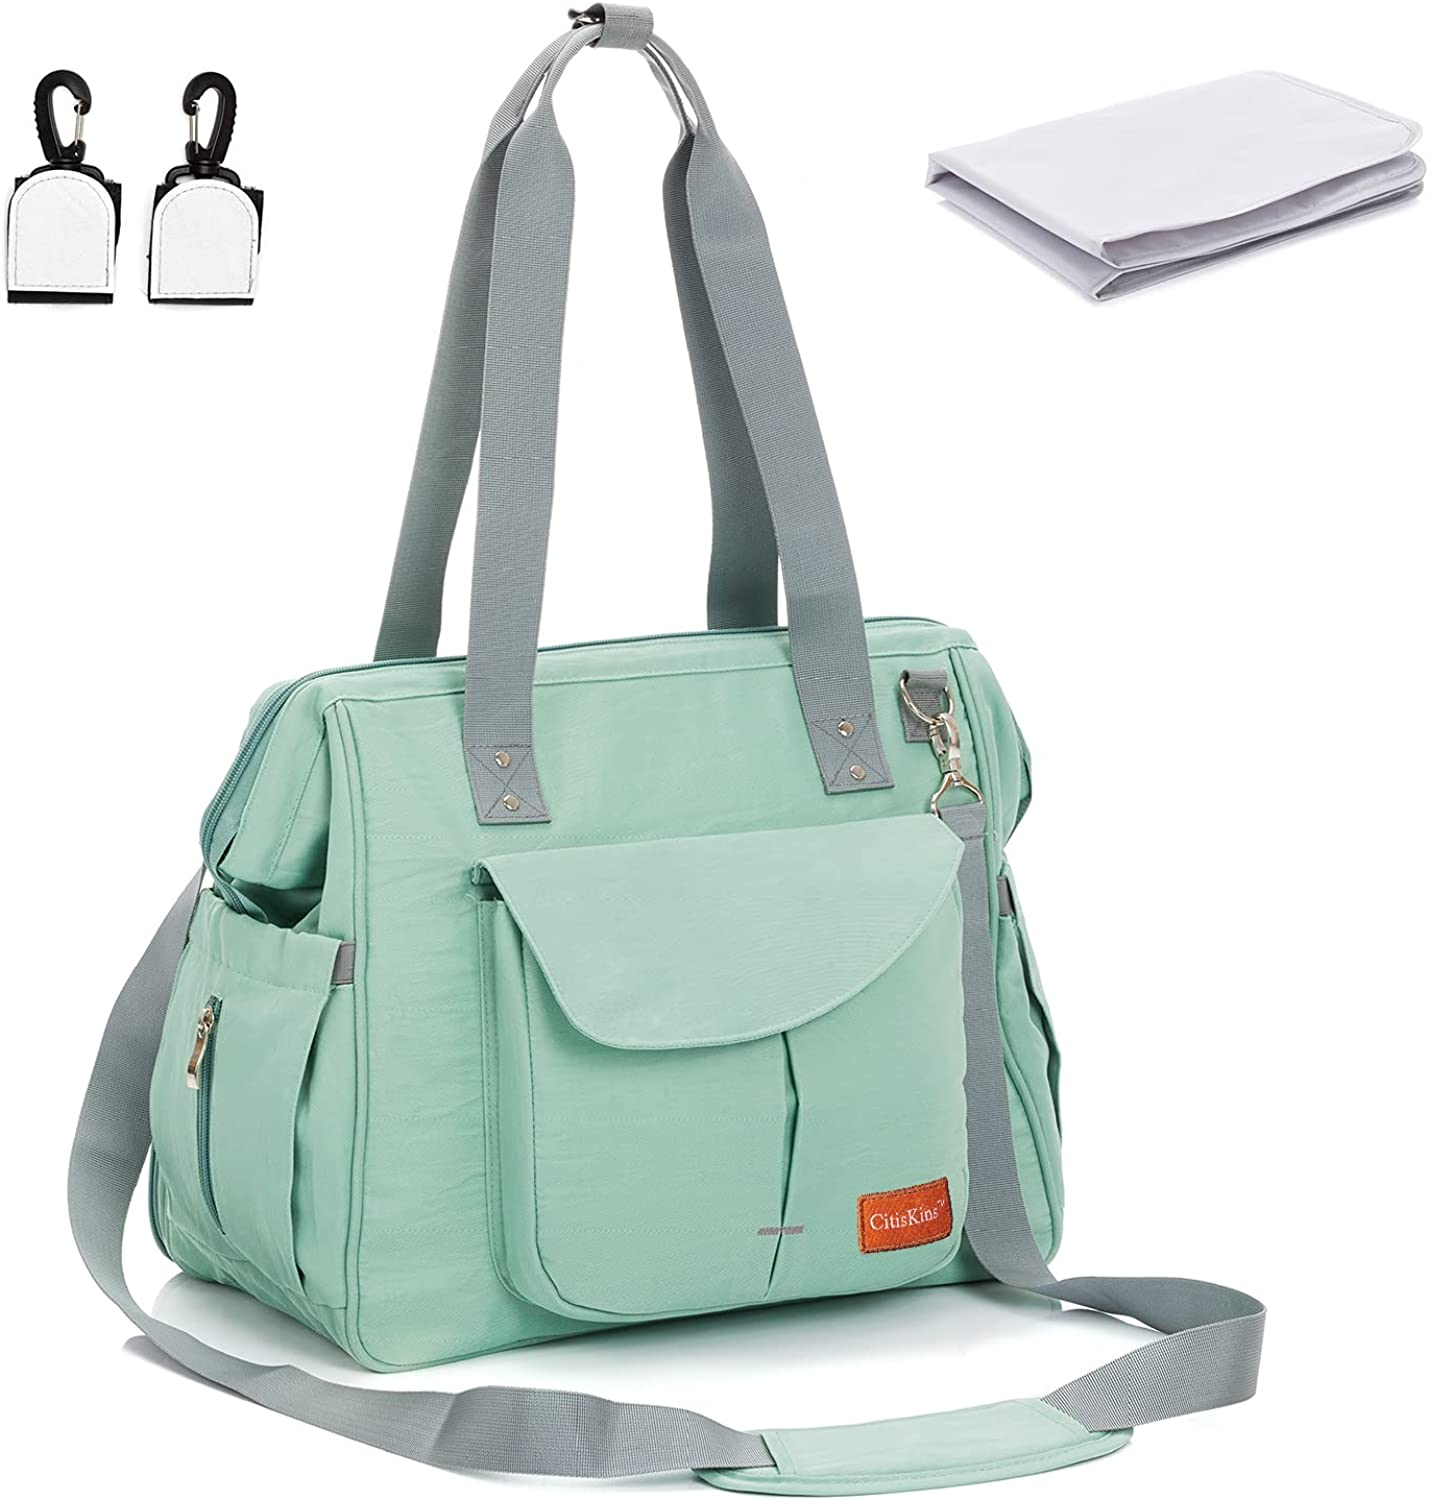 Diaper Bag Max 71% OFF Large Tote Baby insulation Bottle Mommy Messenger Chicago Mall Out